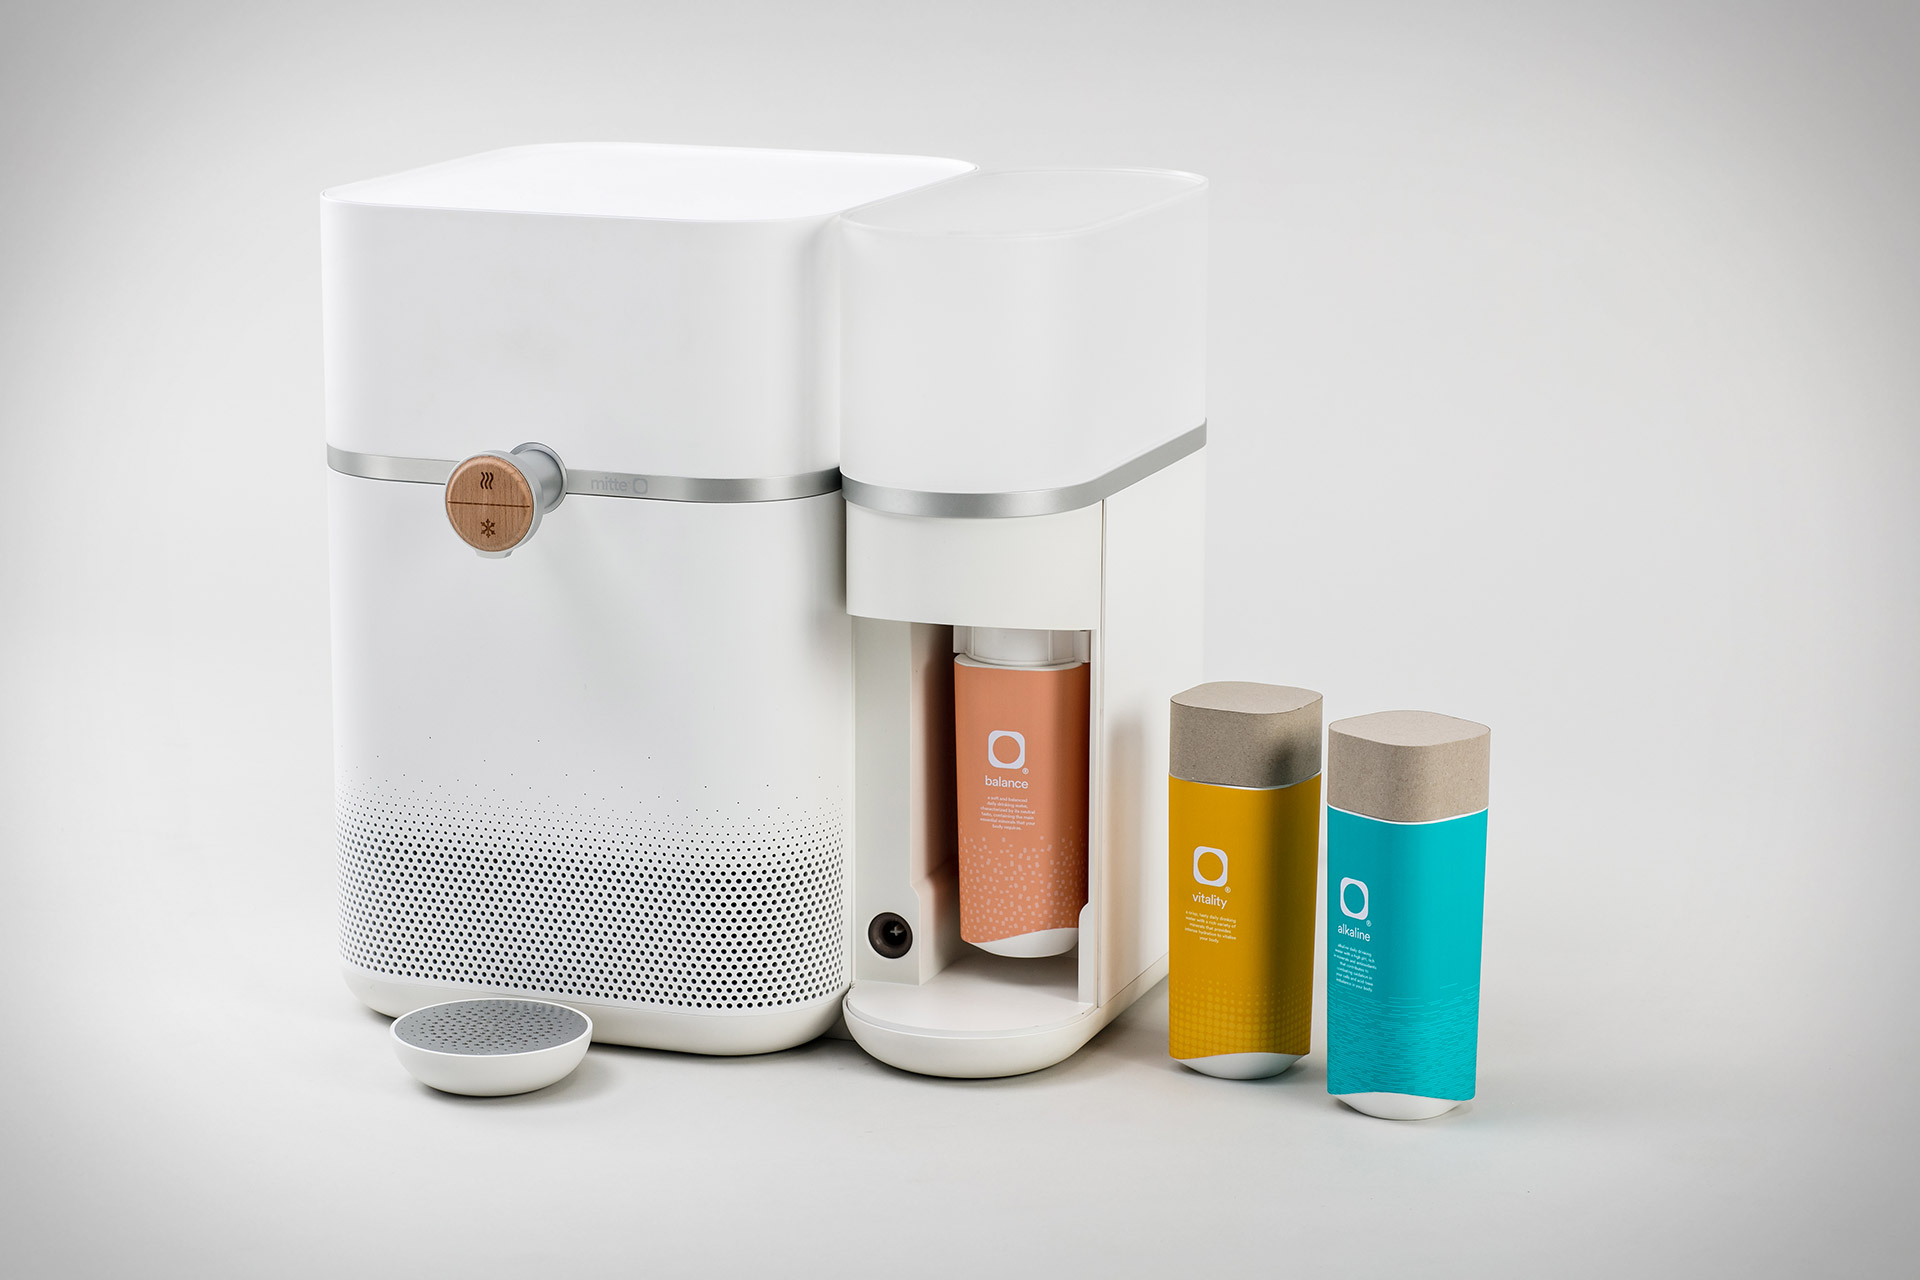 The Mitte water purification system offer you water that suits you